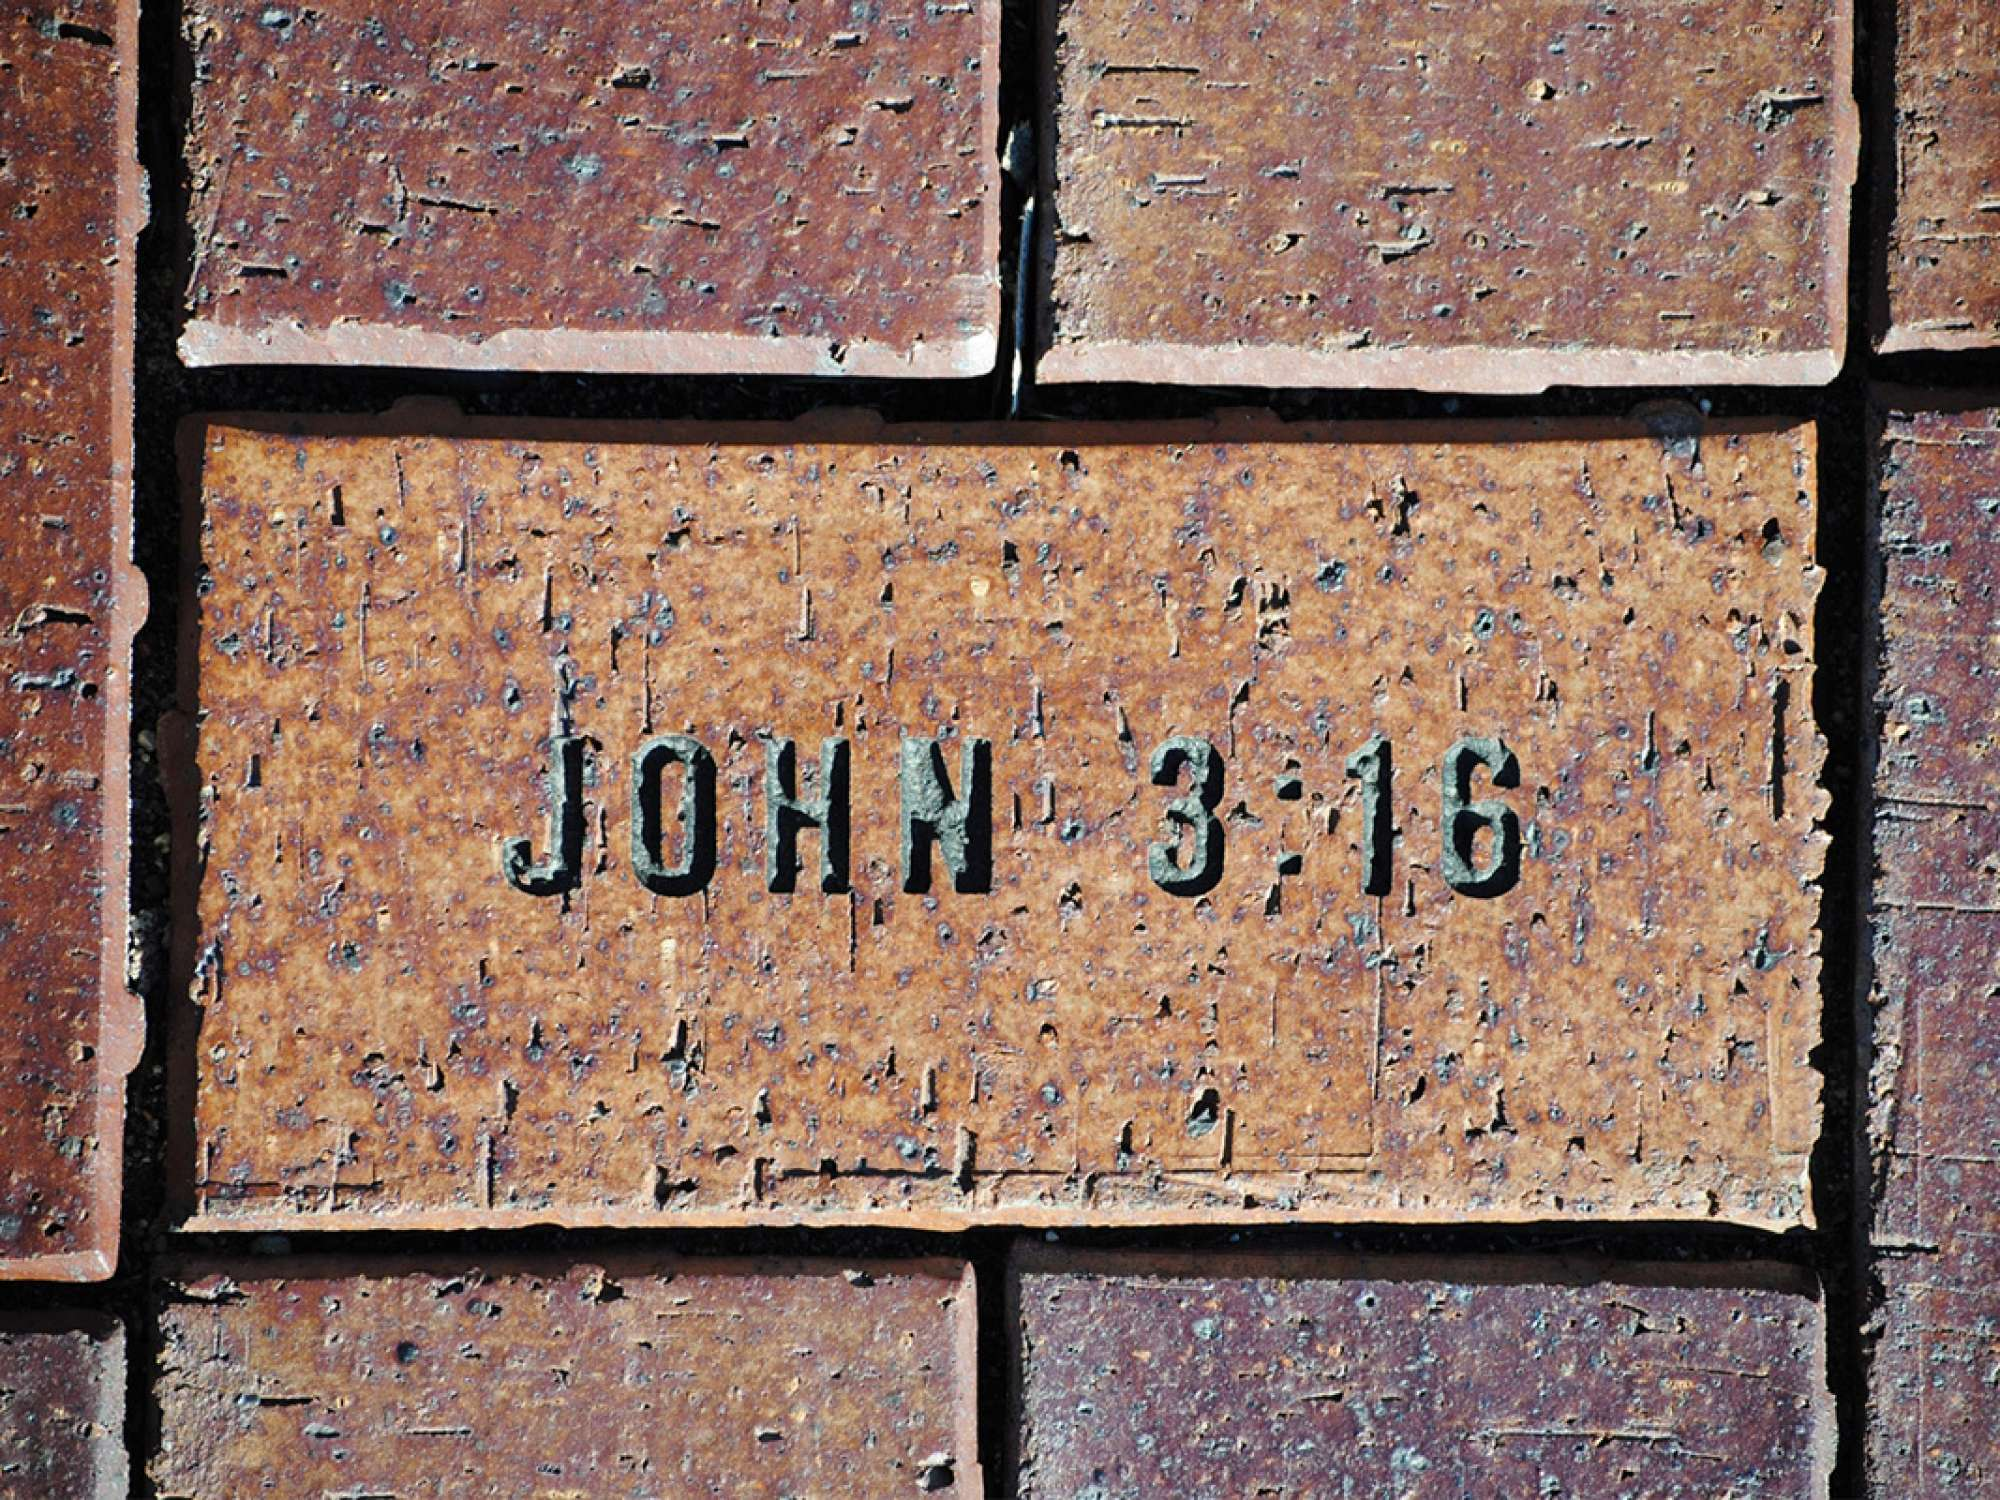 John 3:16 inscribed in a paver